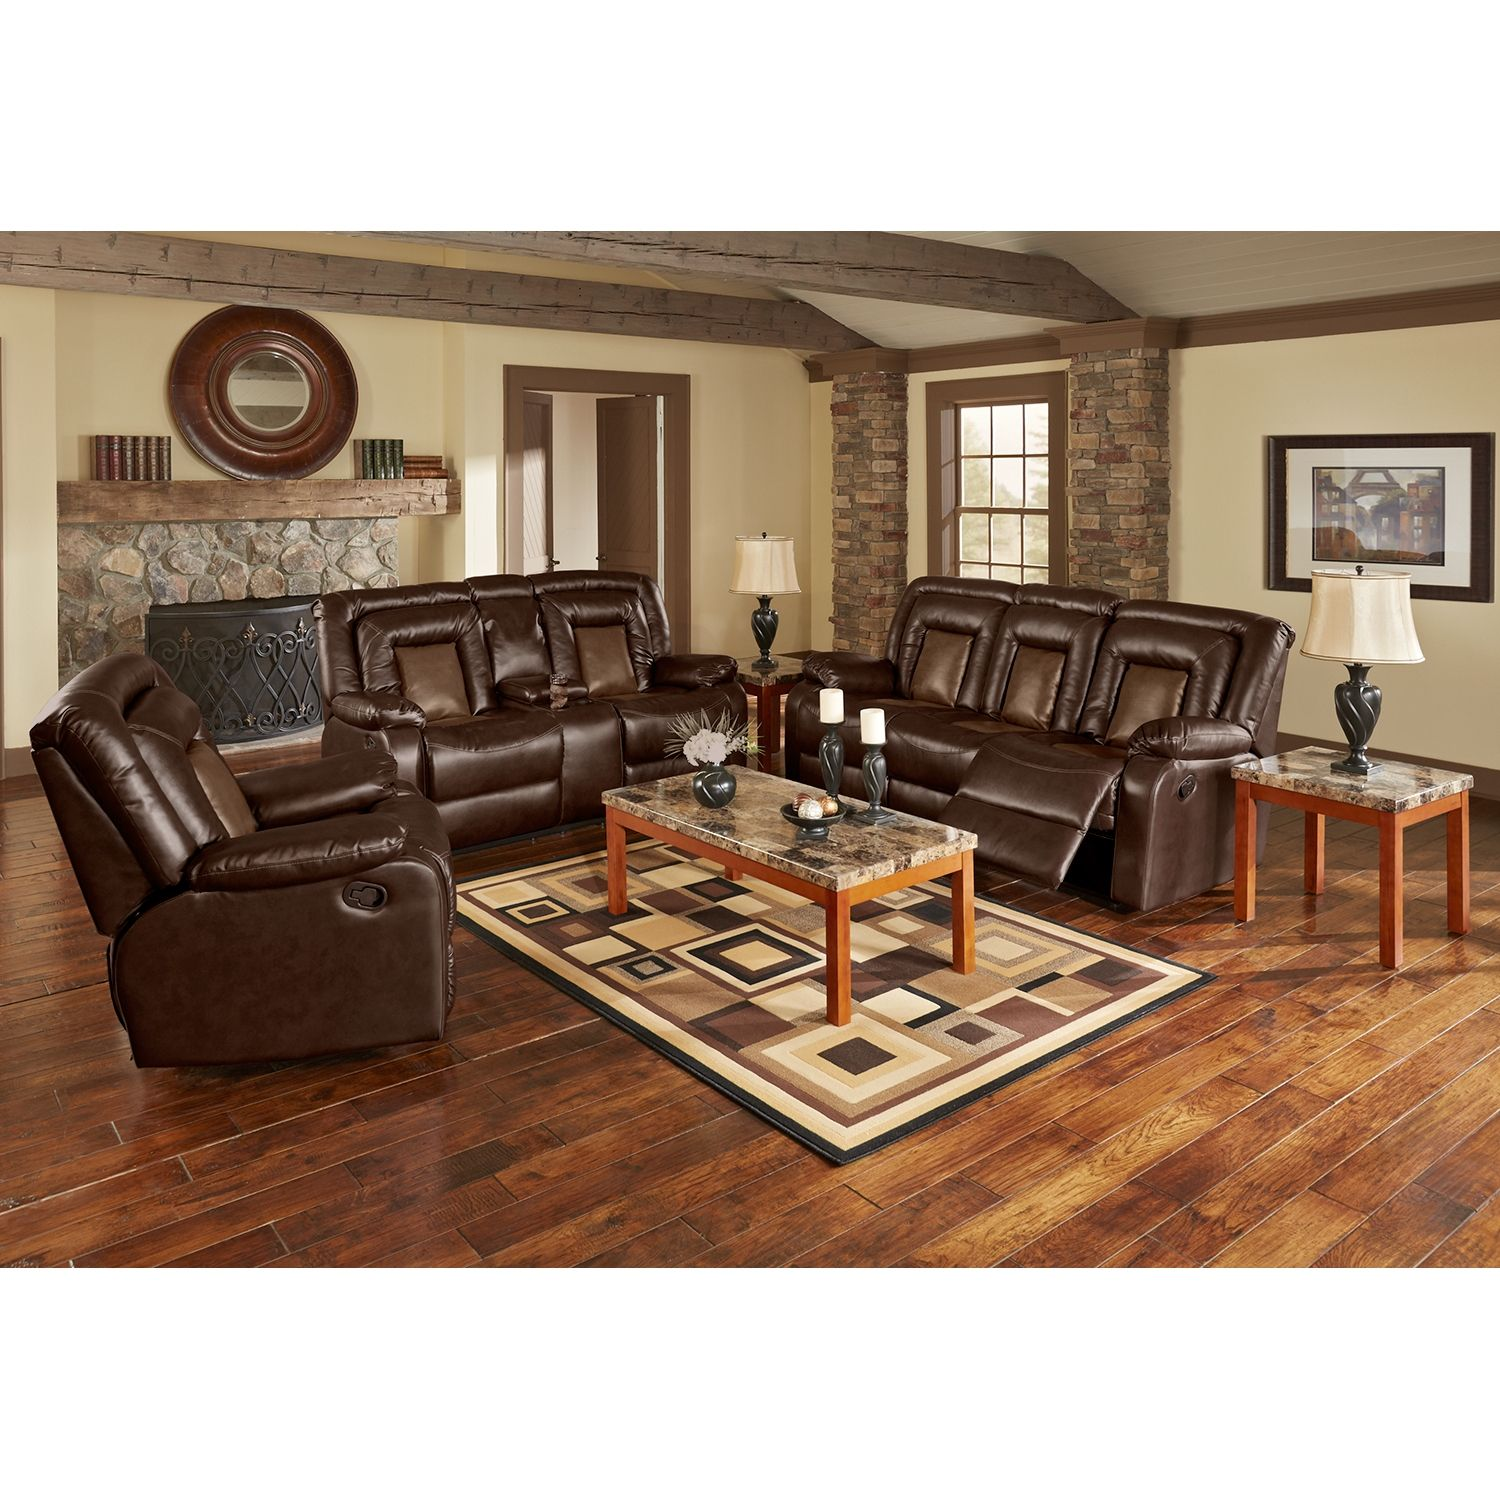 Living room furniture cobra 2 pc reclining living room